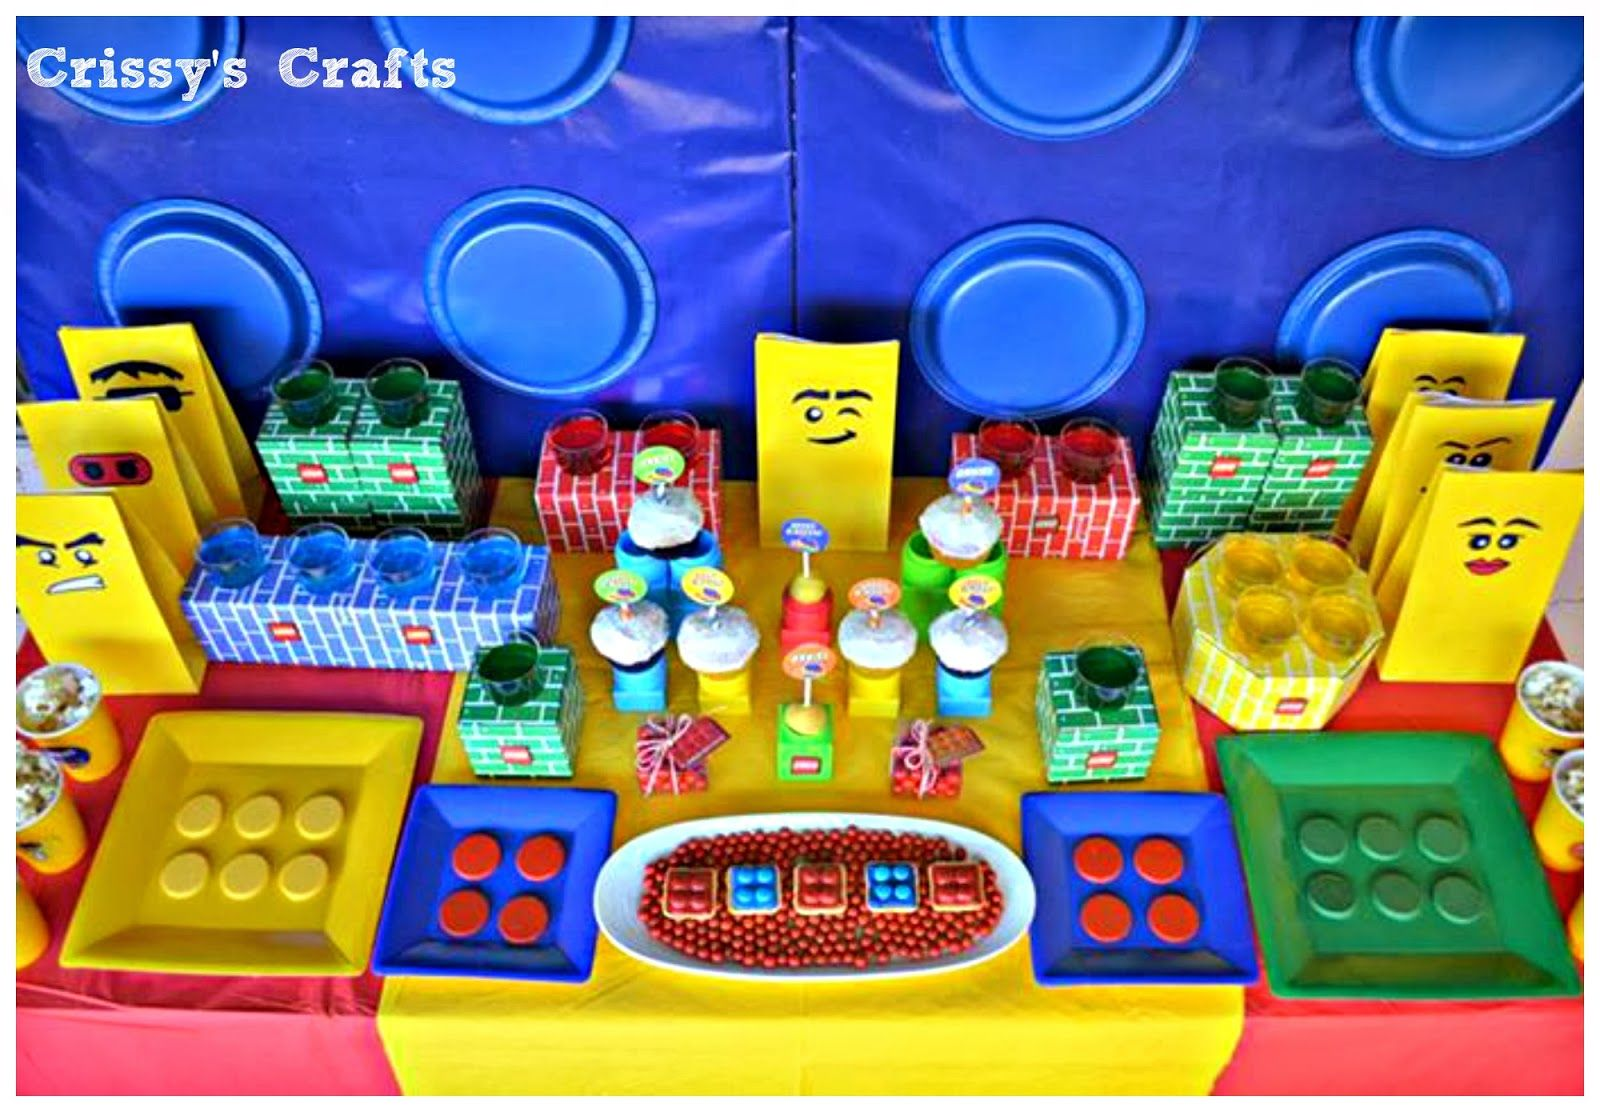 Crissys Crafts Put Together An Amazing Lego Party With Goodies From City Love The Giant Wall Made Table Covers And Plates